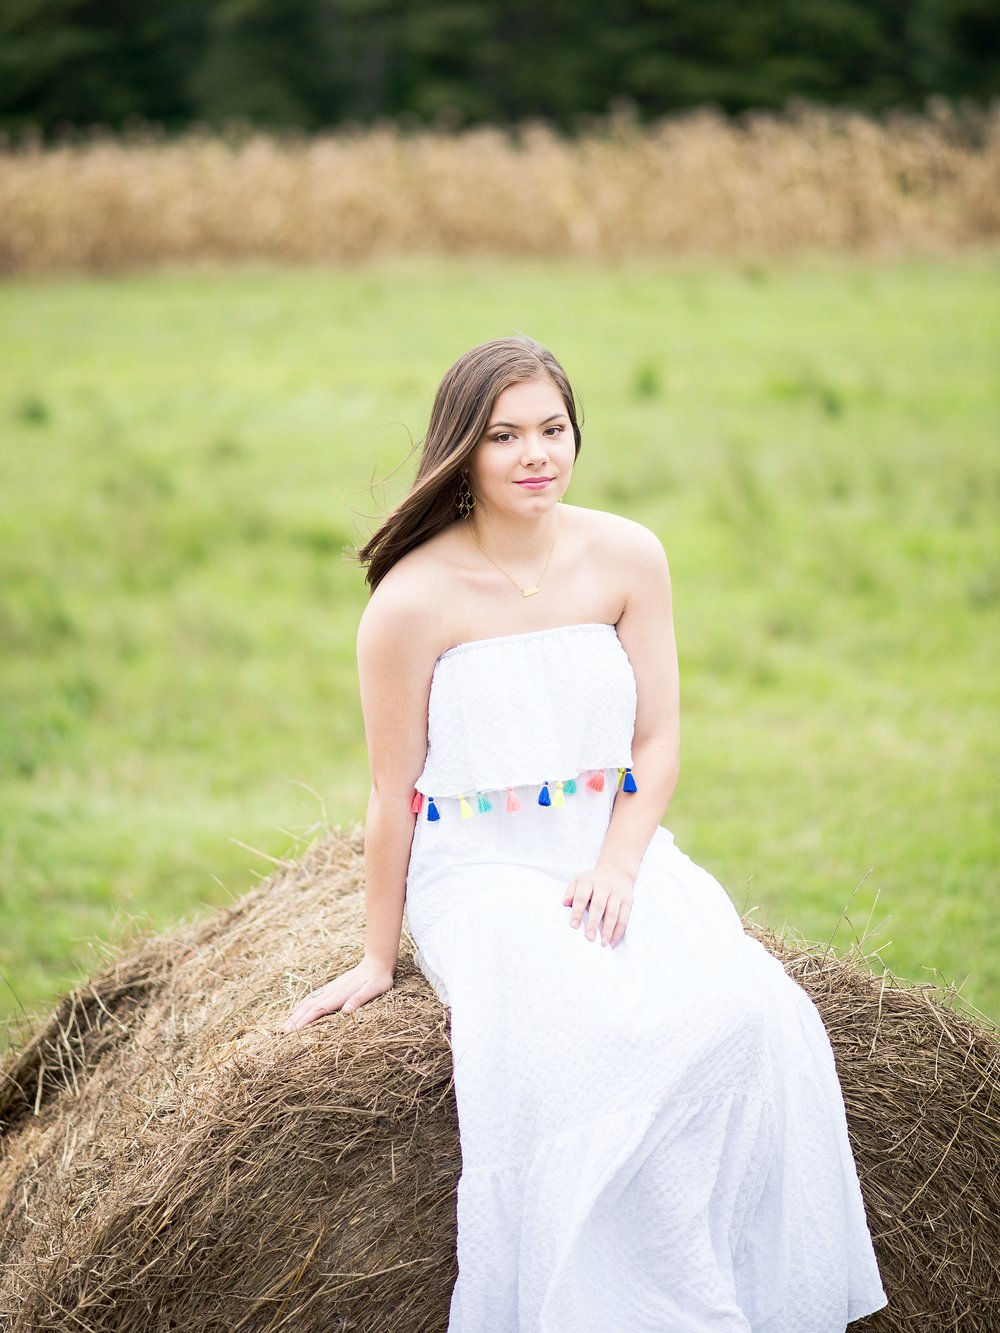 Planning your senior portrait outfits — Emily Reedstrom